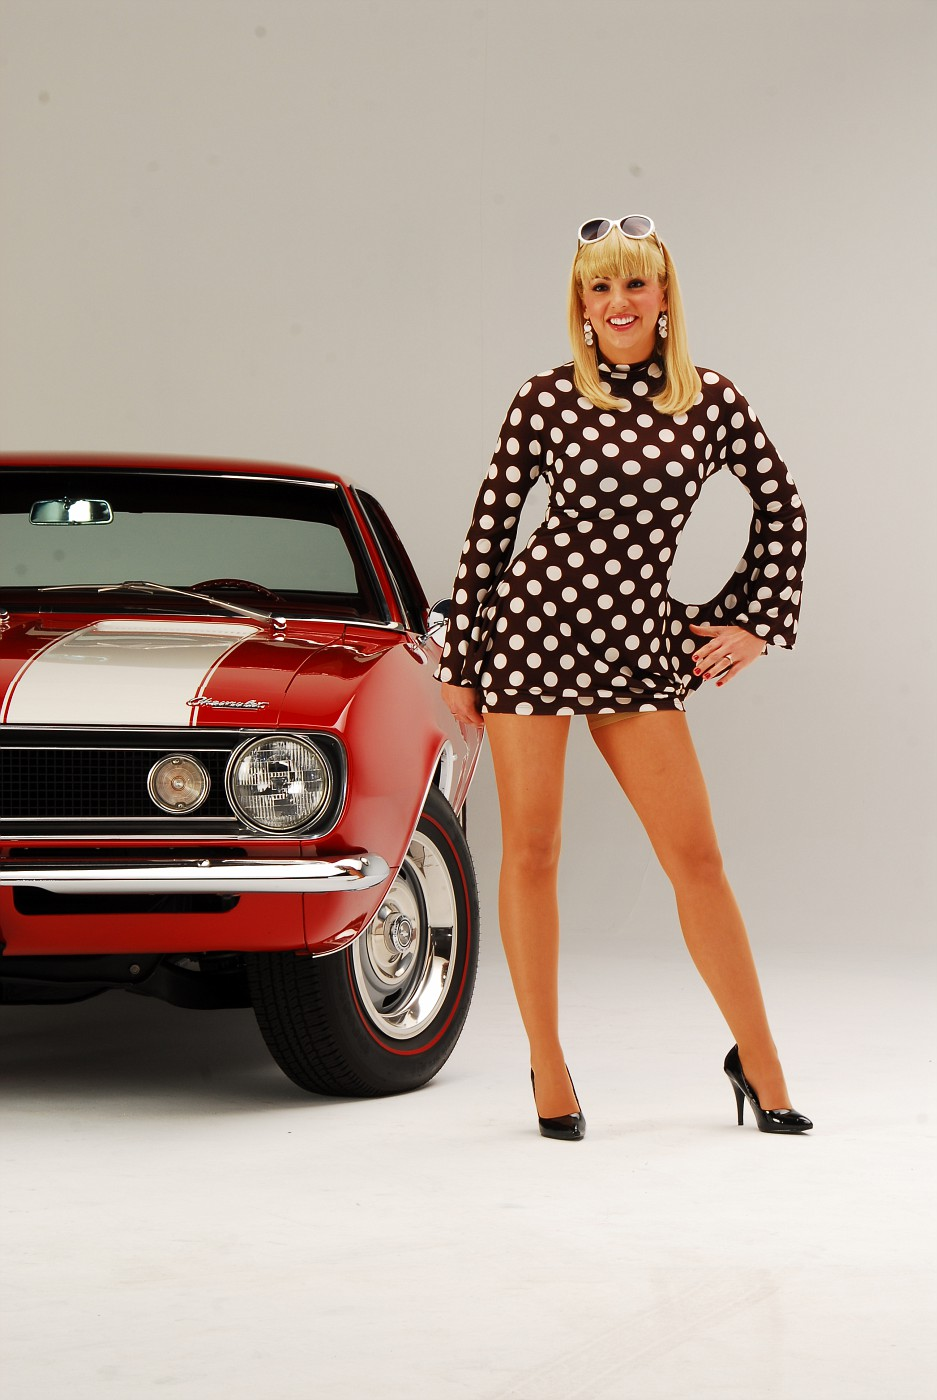 1967 Camaro Z28 with Courtney Day 04